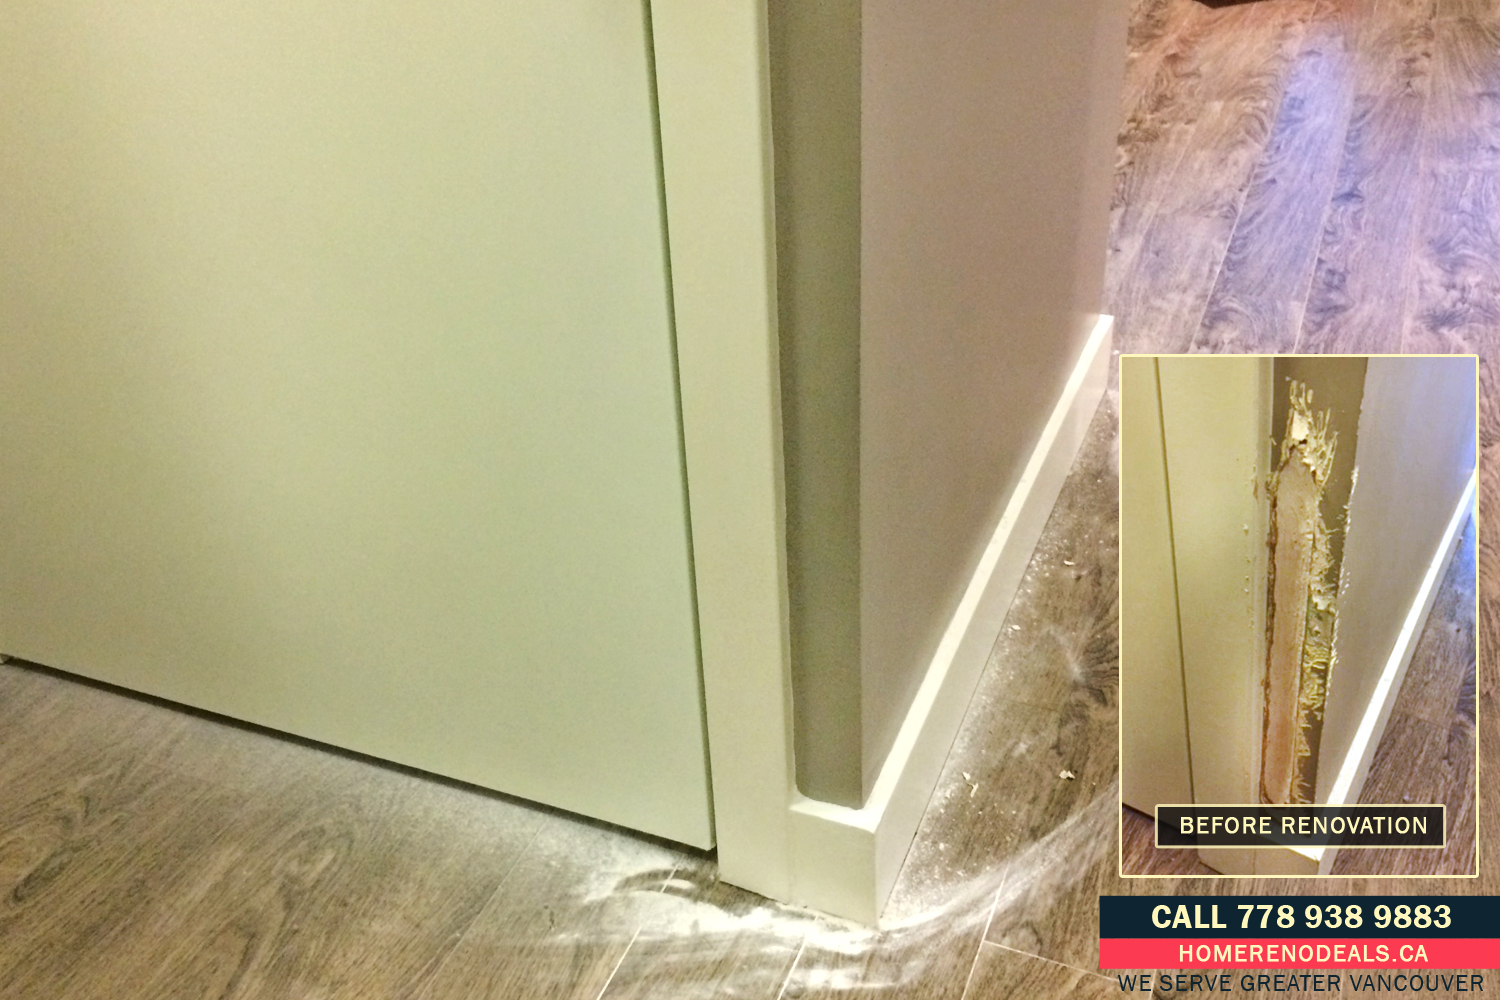 Dog, Cat and Pet Damaged Wall Repair Service in Greater Vancouver, BC